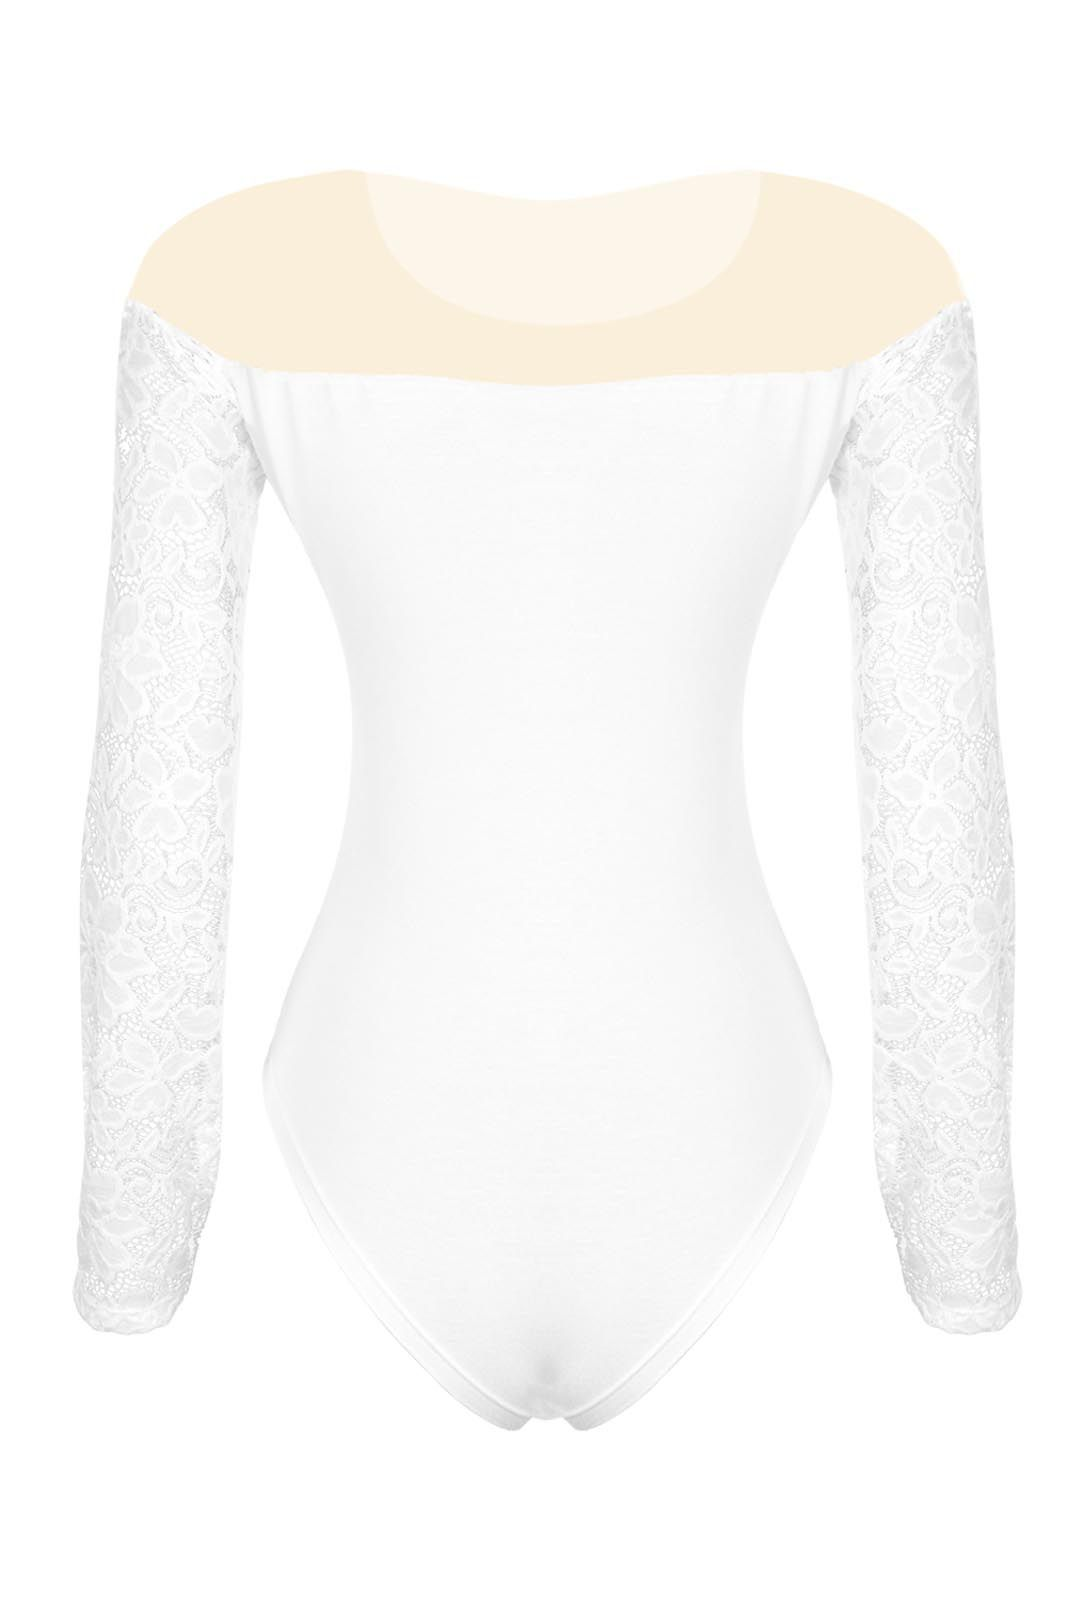 Body OutletDri Ml Renda Tule Branco